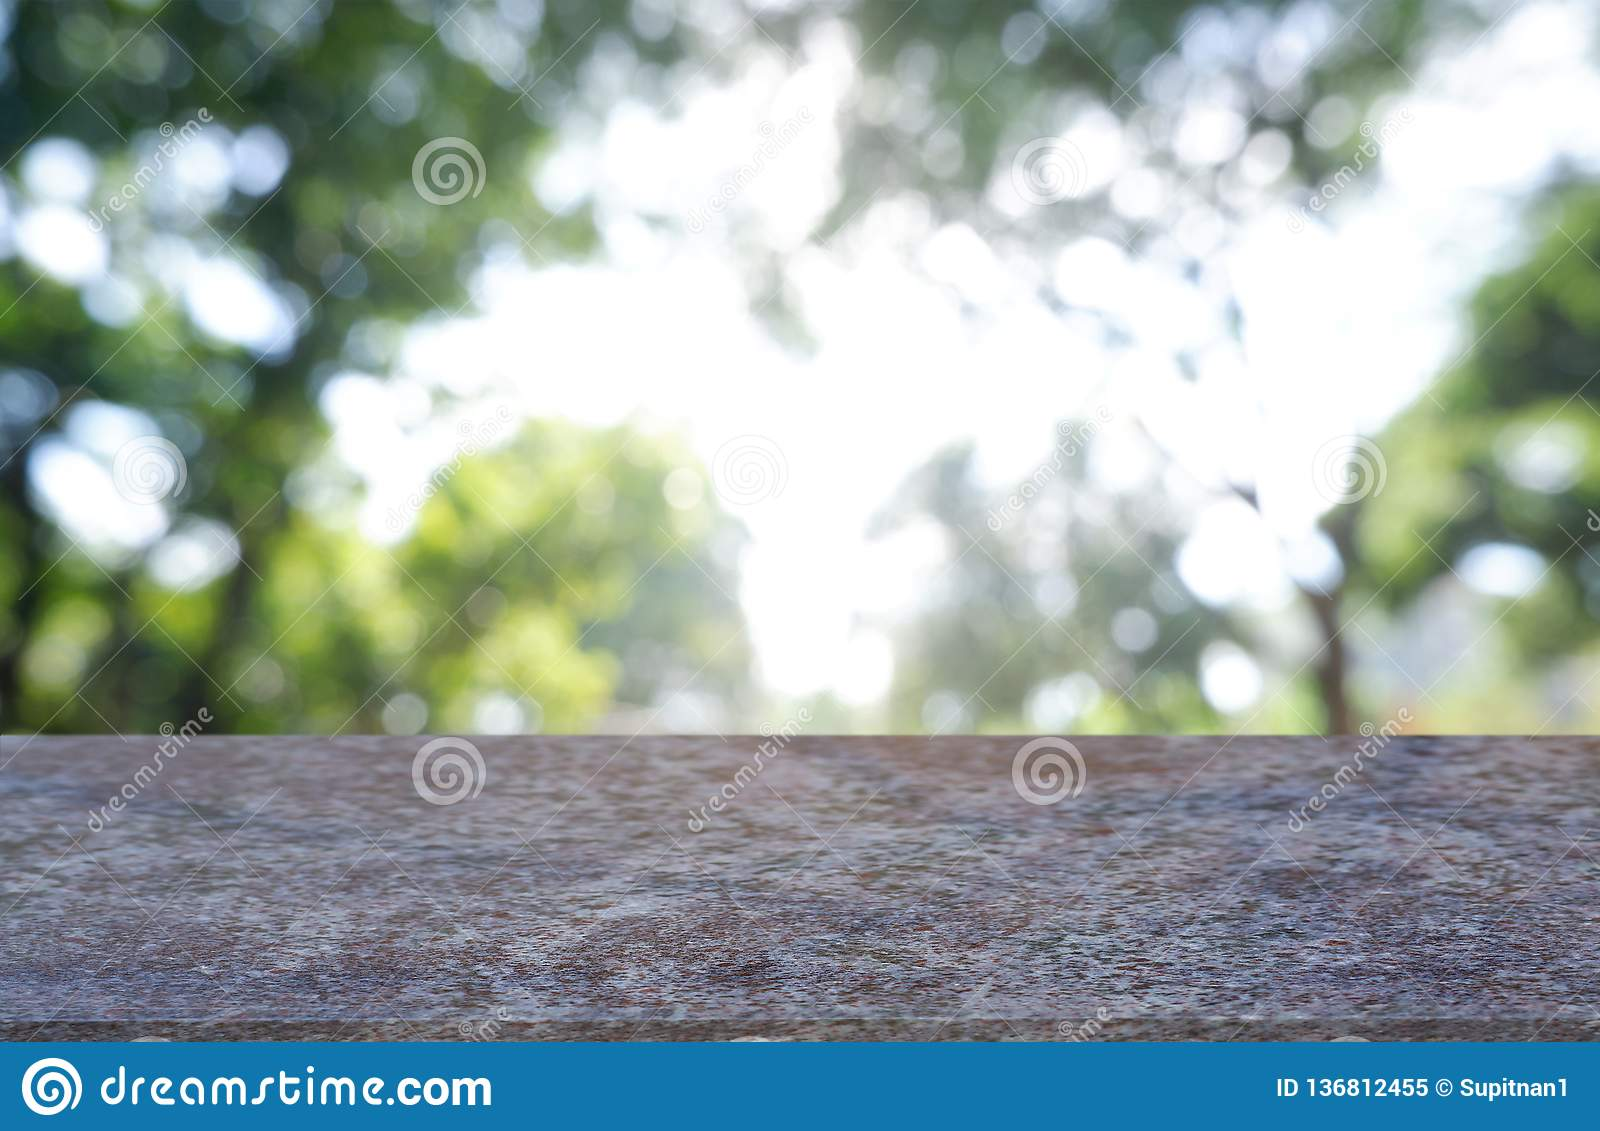 Empty marble stone. table in front of abstract blurred green of garden and trees.background. For montage product display or design